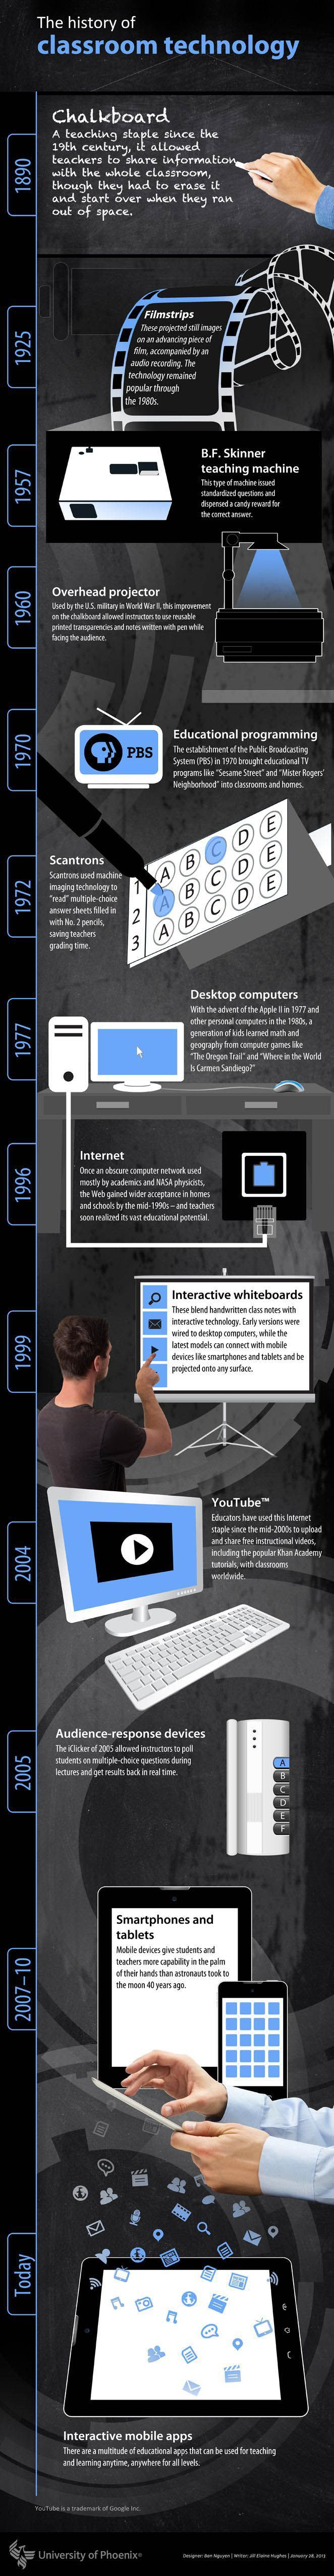 Below is an amazing infographic that captures and chronicles the main stages that marked the use of technology in the classroom. This visual...